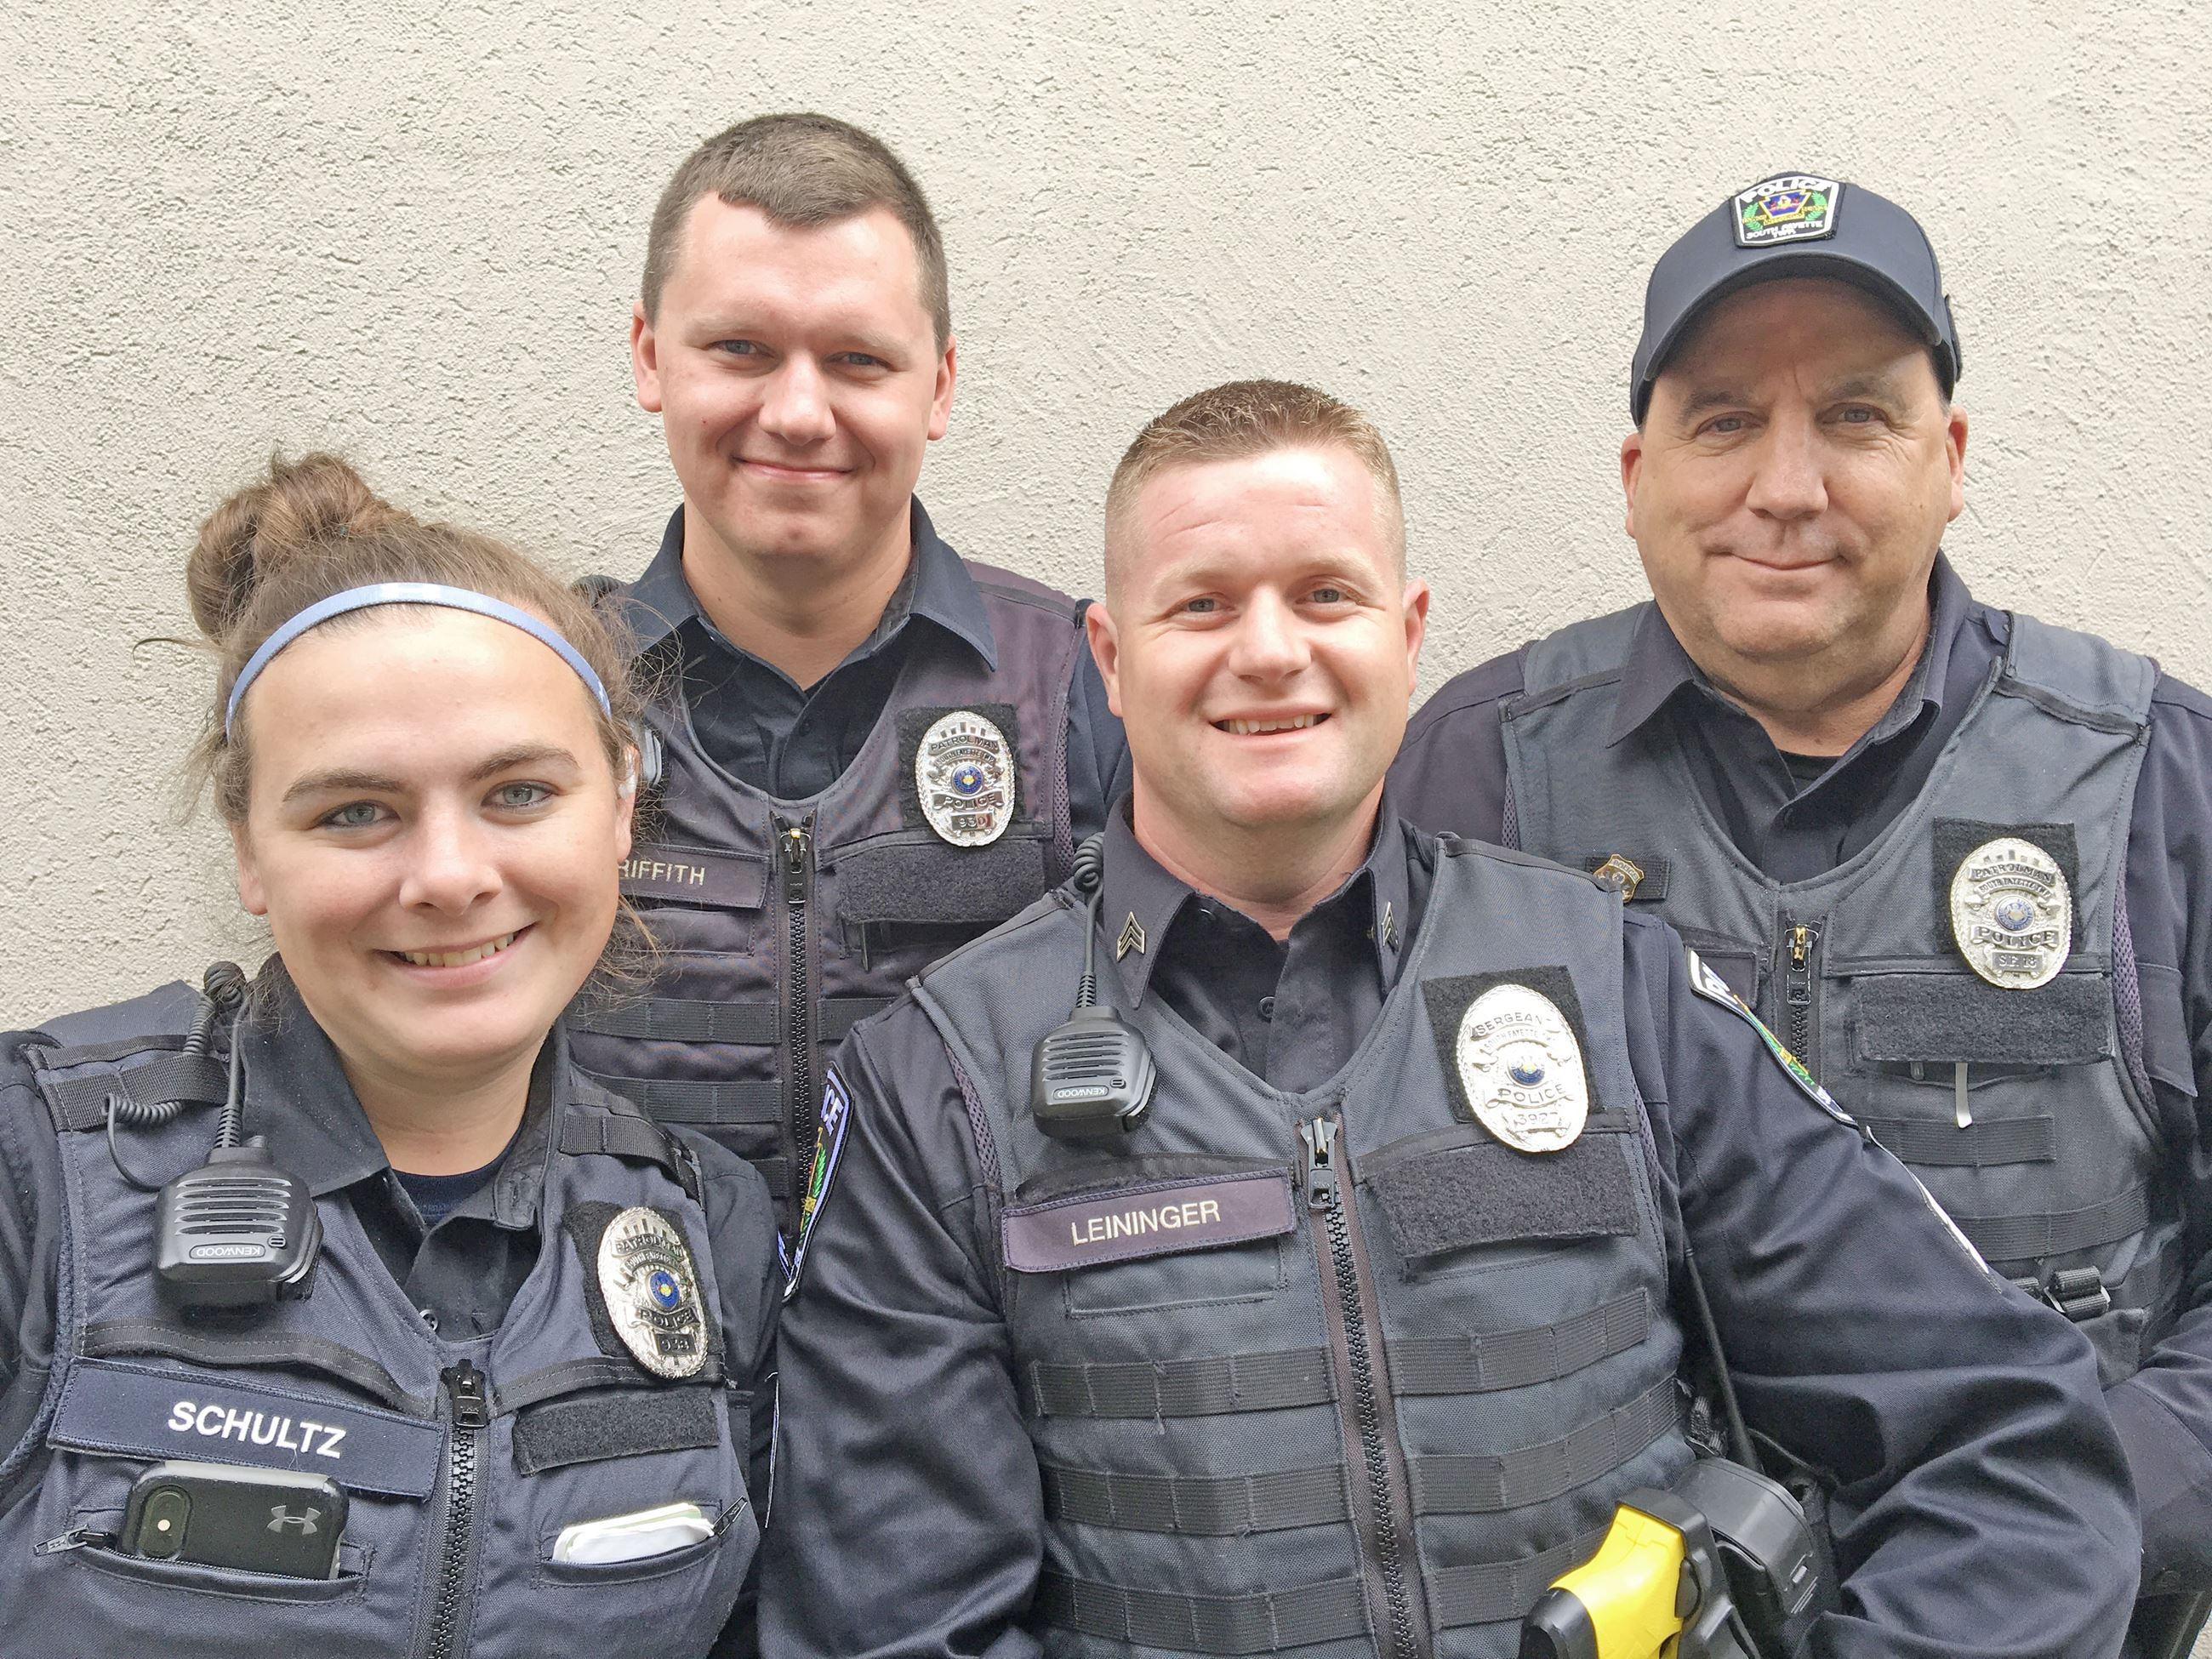 South Fayette Police Officers